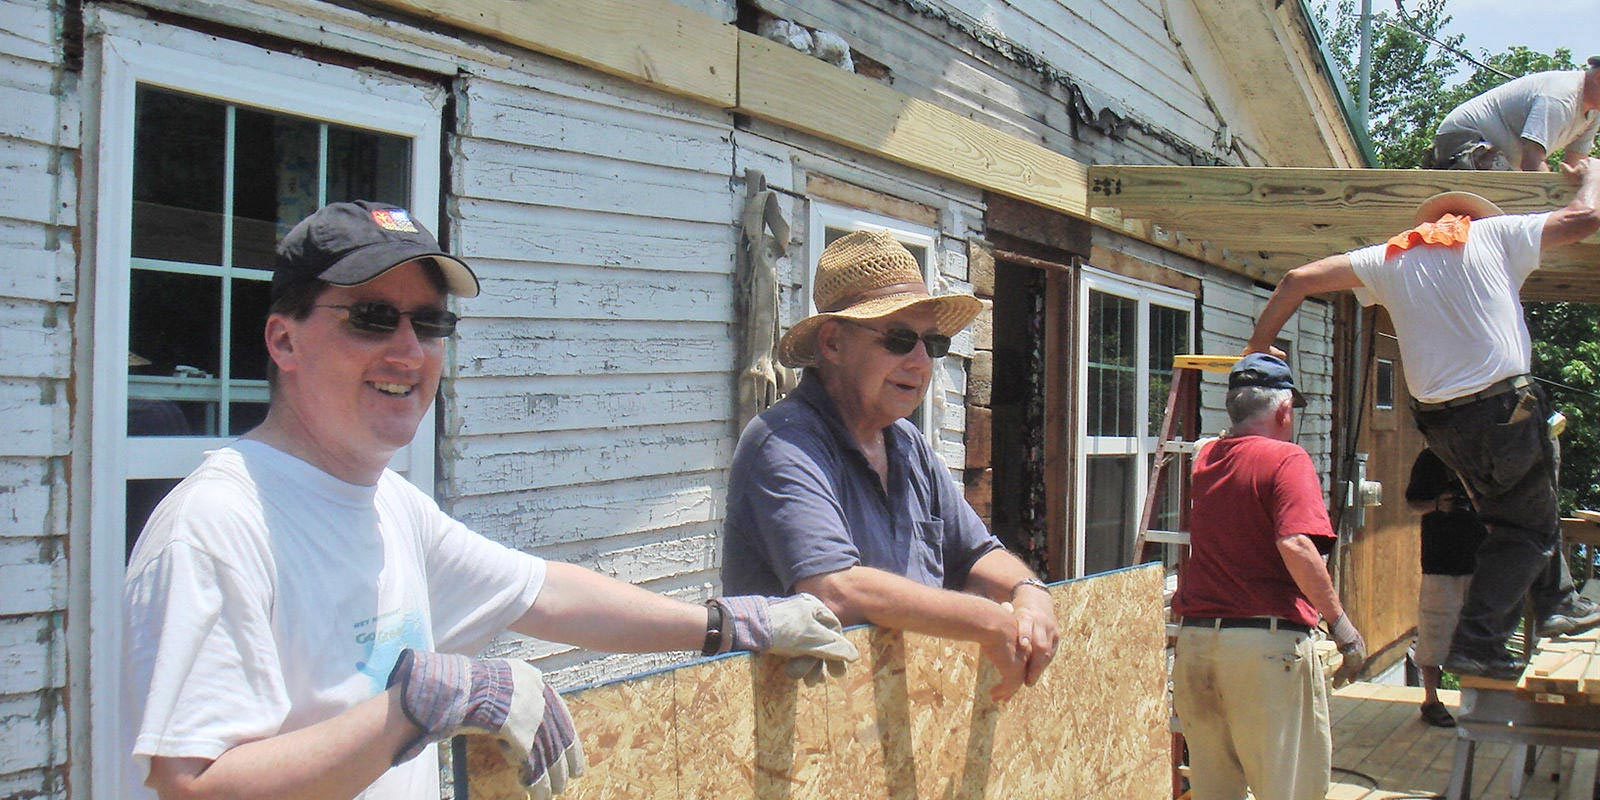 Father Adam and a crew of volunteers help to repair a local home in Gassaway, West Virginia.